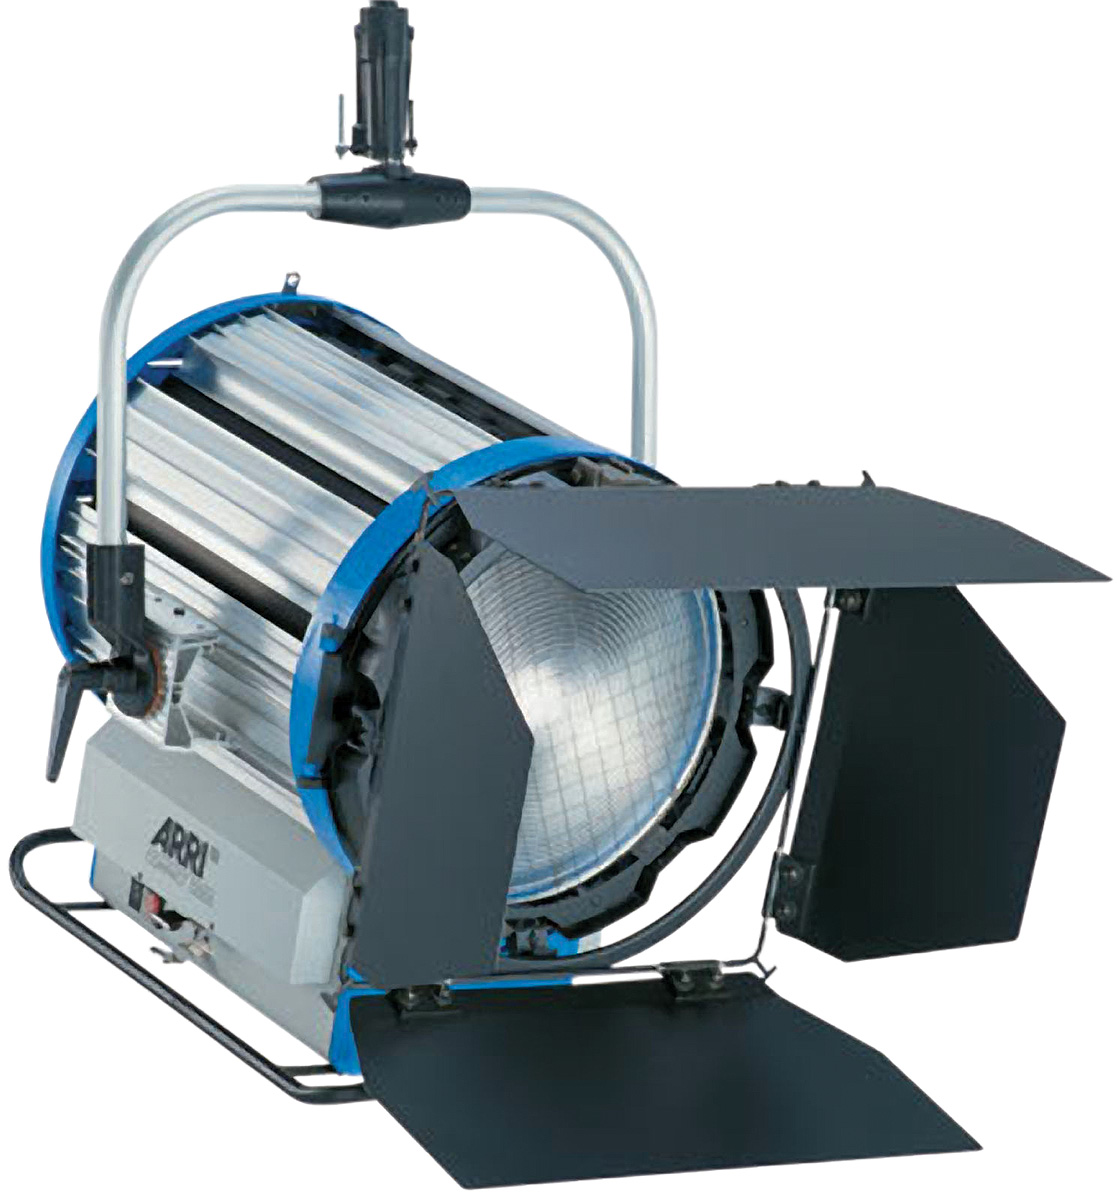 Donfilms Darkroom Hmi Lights From Cinema Industry To A Lighting Diagram Profoto An Light Spectrum Is Very Similar Daylight This Why It Can Be Used In Exteriors Without The Need Of Colour Correcting By Filters And